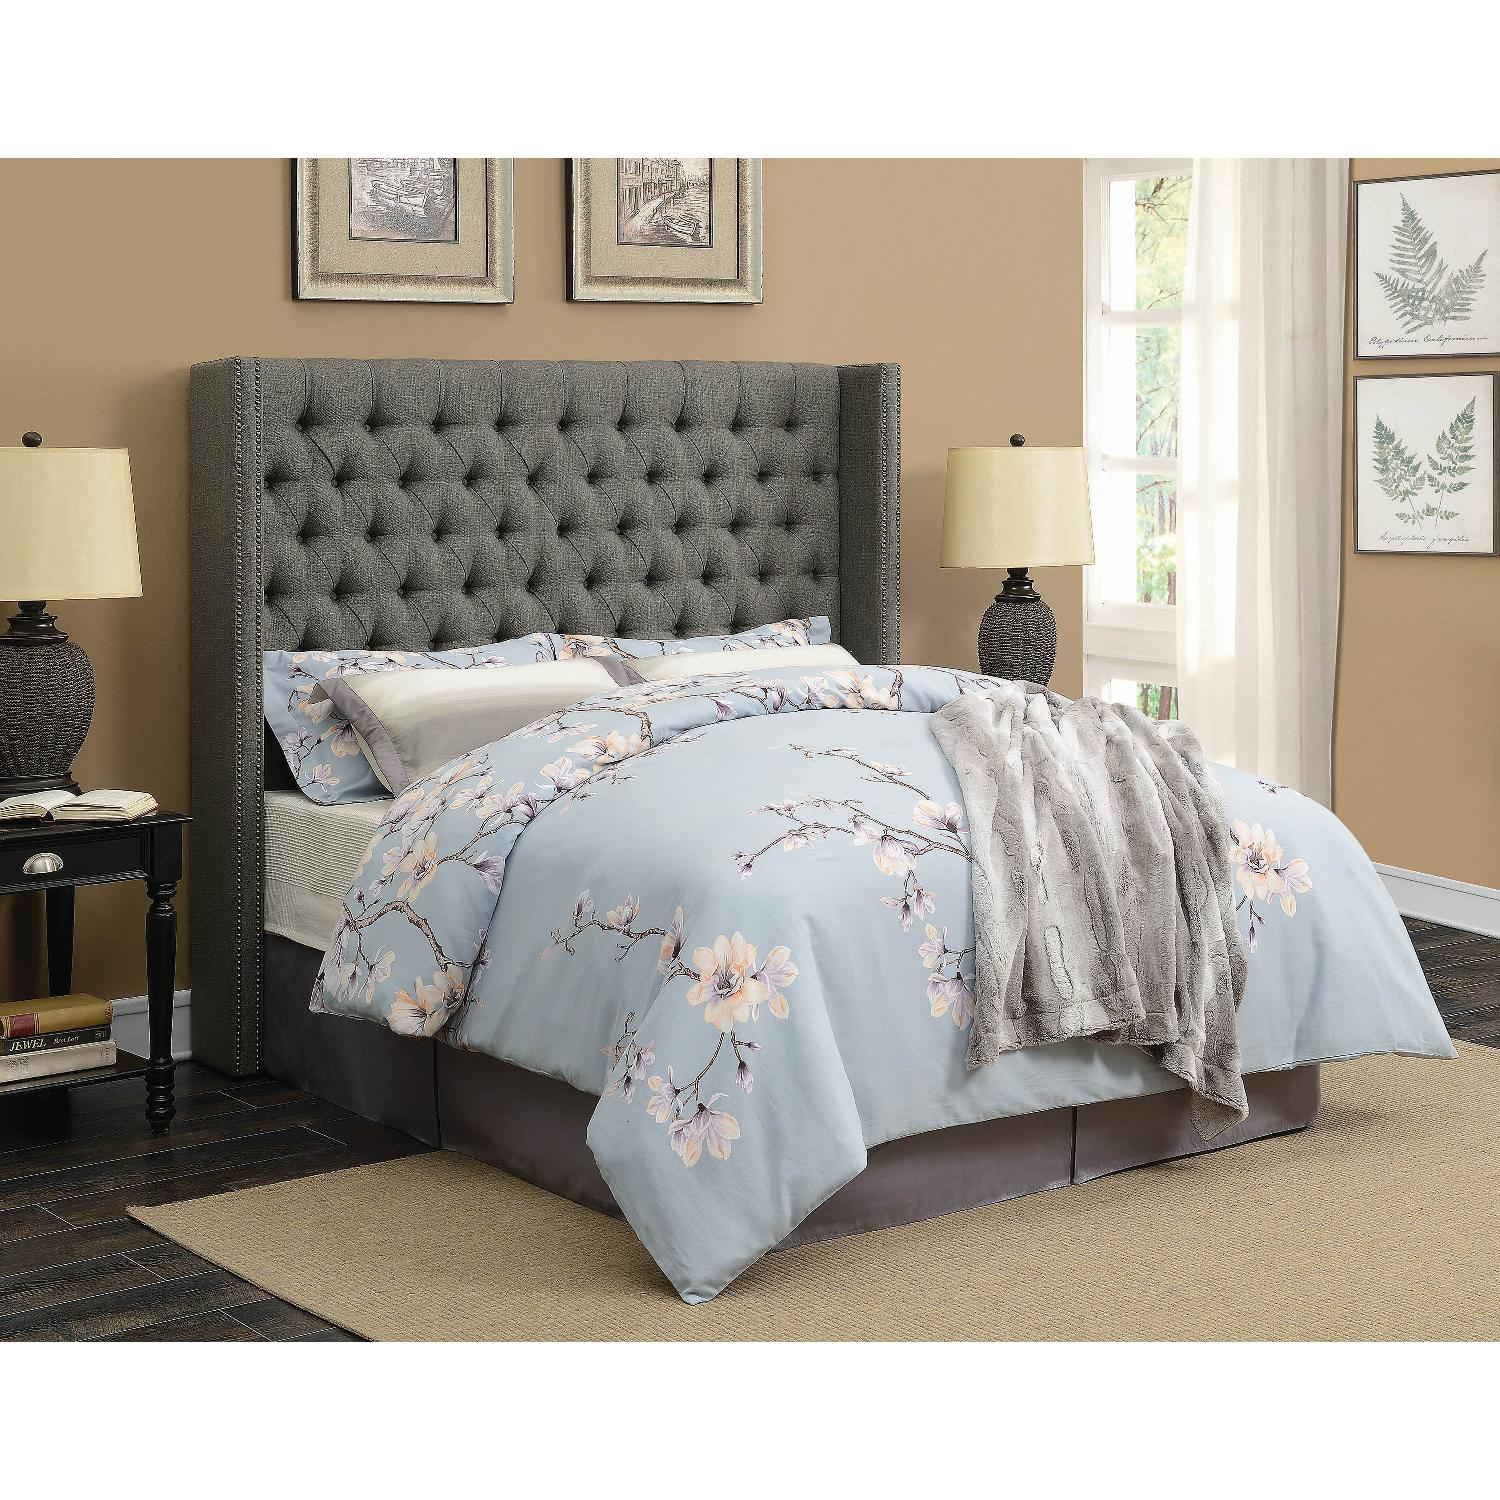 Modern Demi Wing Queen Bed in Grey w/ Nailhead Accent - image-12